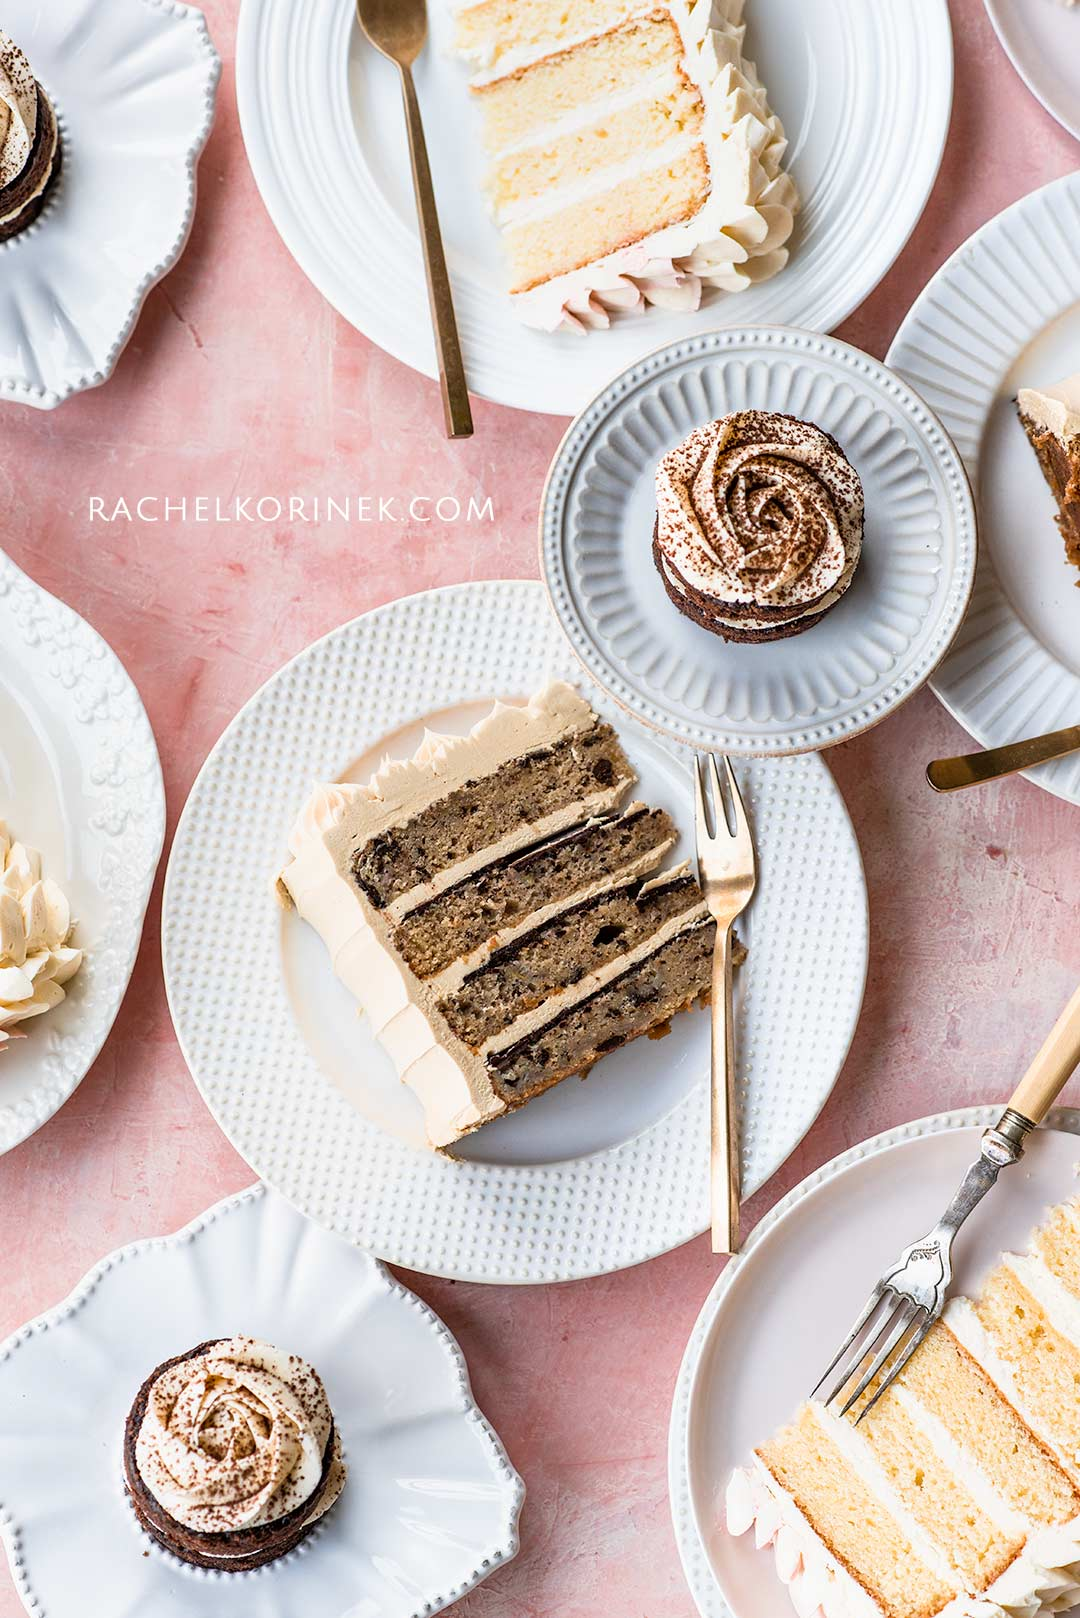 Rachel Korinek Food Photographer | Icing On The Cake. Click to check out my latest food photography projects.  twolovesstudio #beautifulcuisine #foodbloggerpro #foodphotography #learnfoodphotography #foodblogger #learnphotography #foodstyling #lightingtips #naturallight #foodphotographer